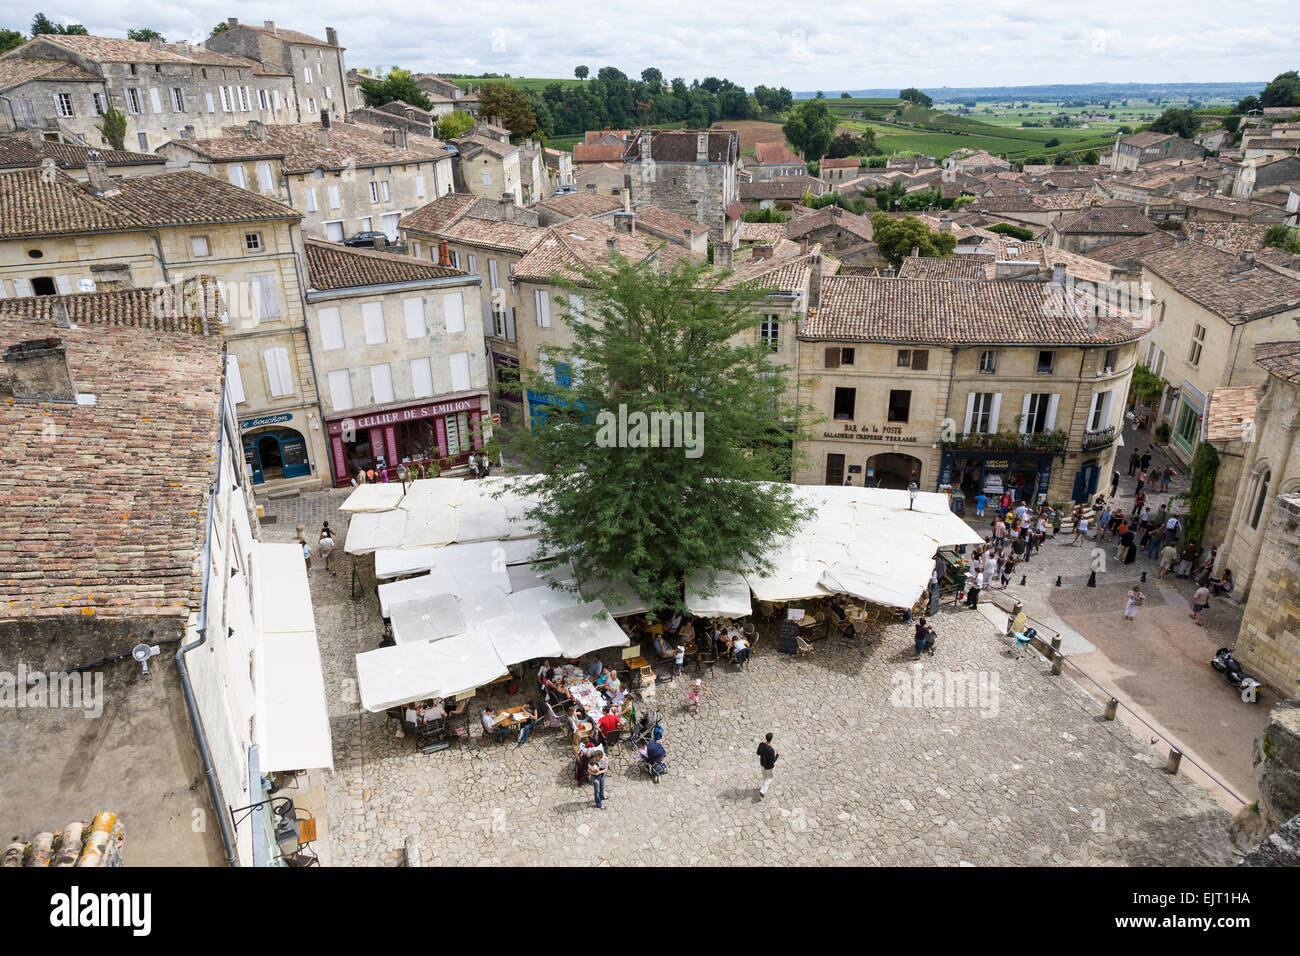 View from the church tower in St Emilion of the cafe and square below together with the tiled rooftops and countryside - Stock Image